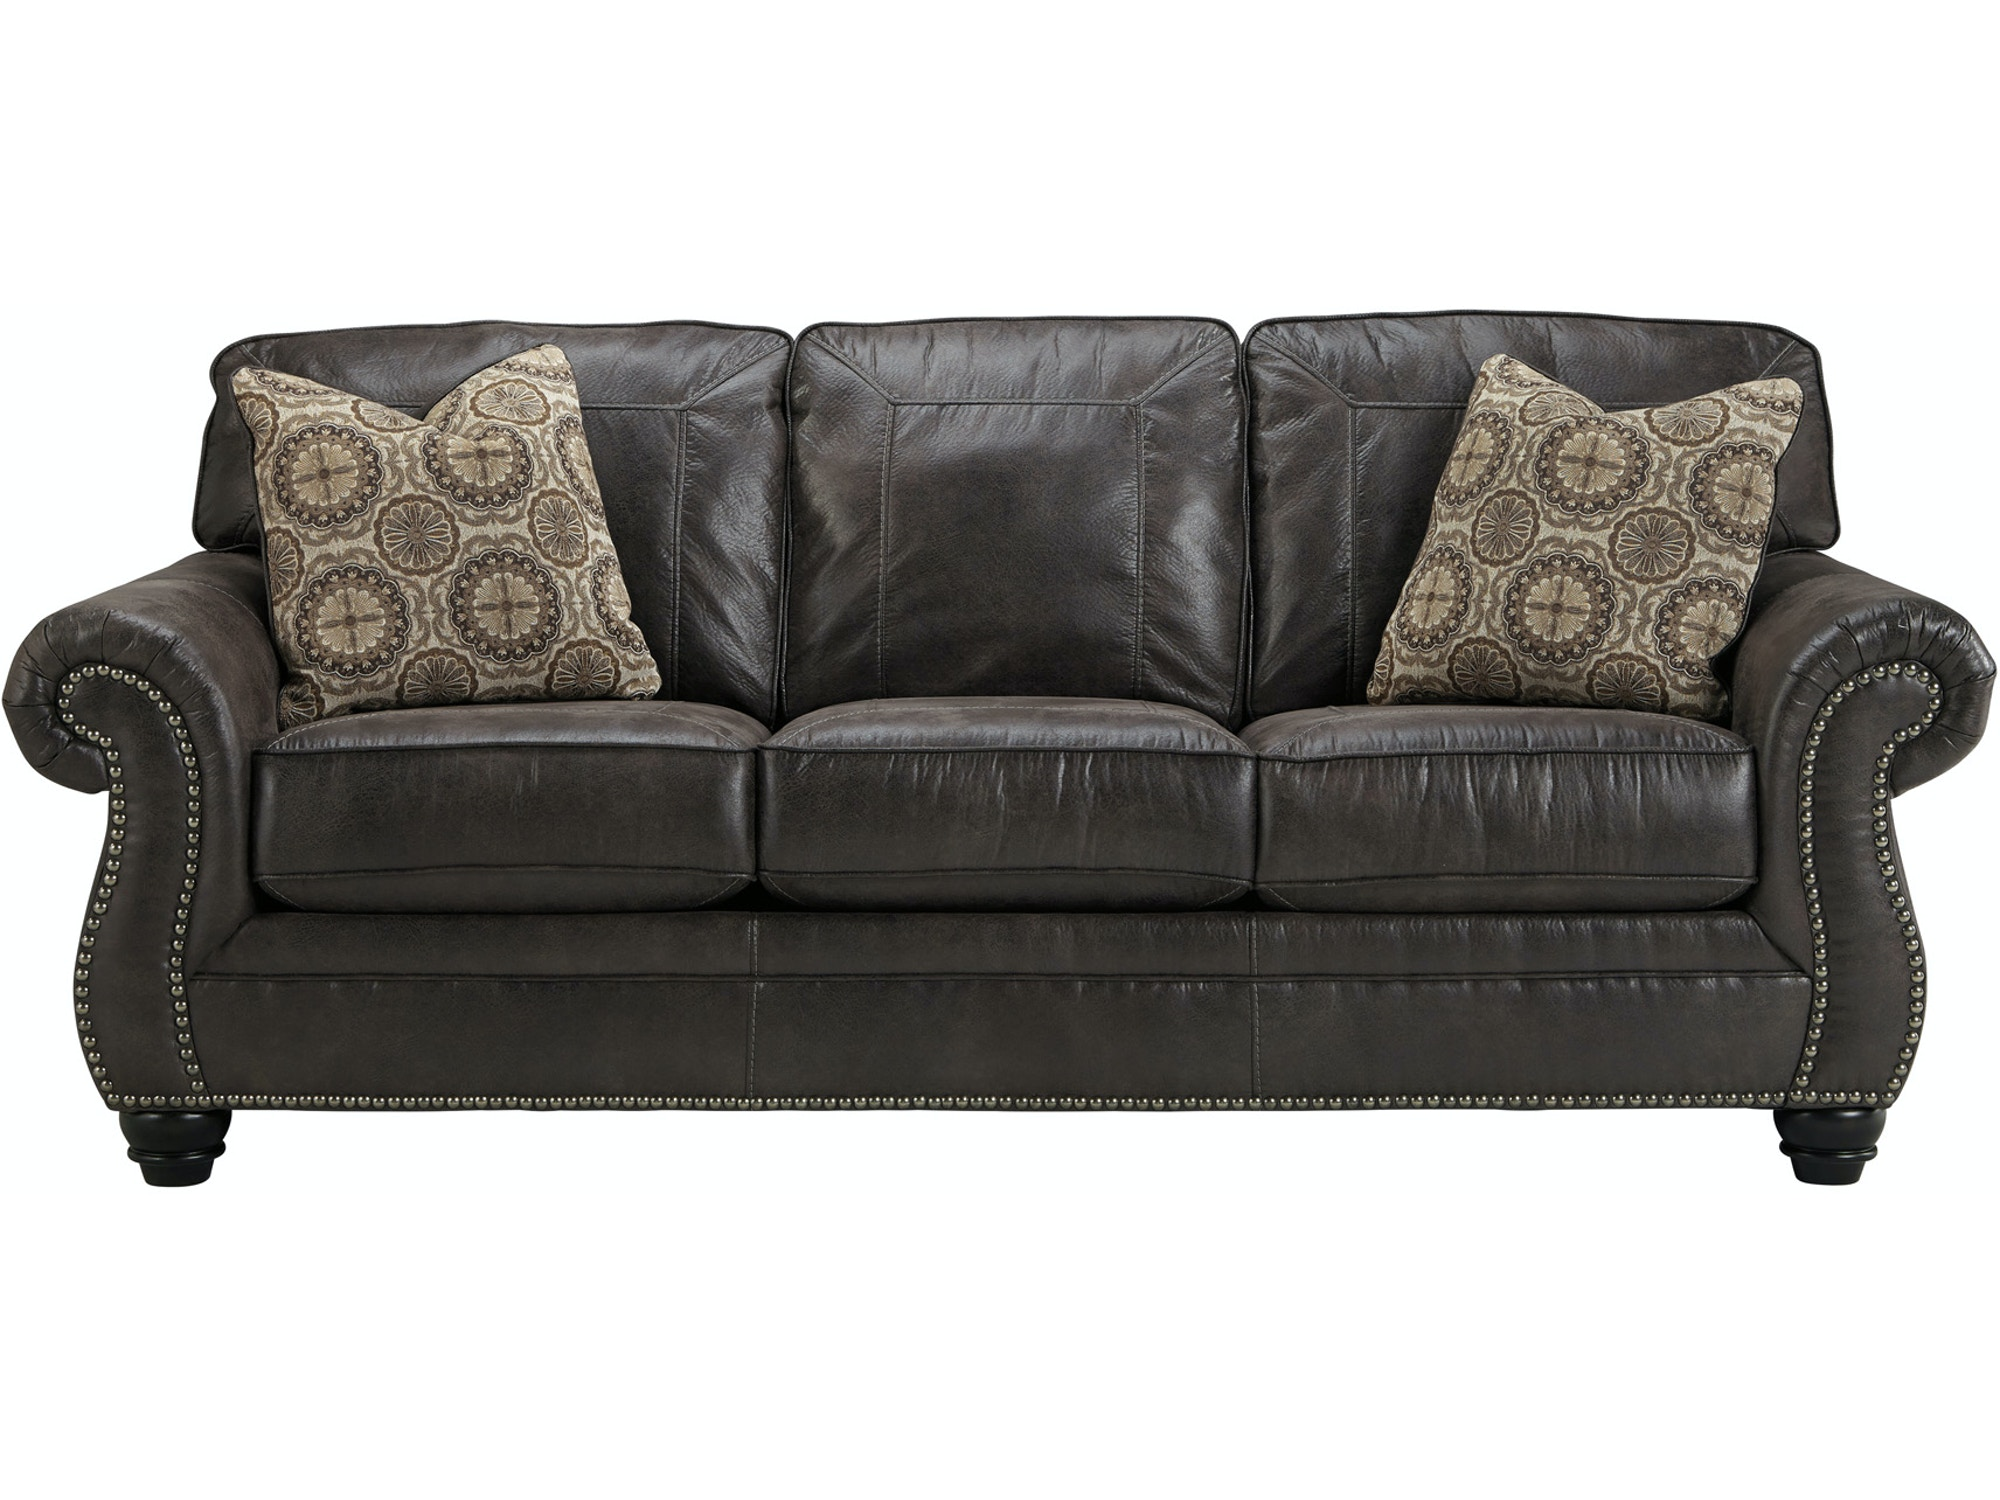 Breville Sofa - Charcoal 046646